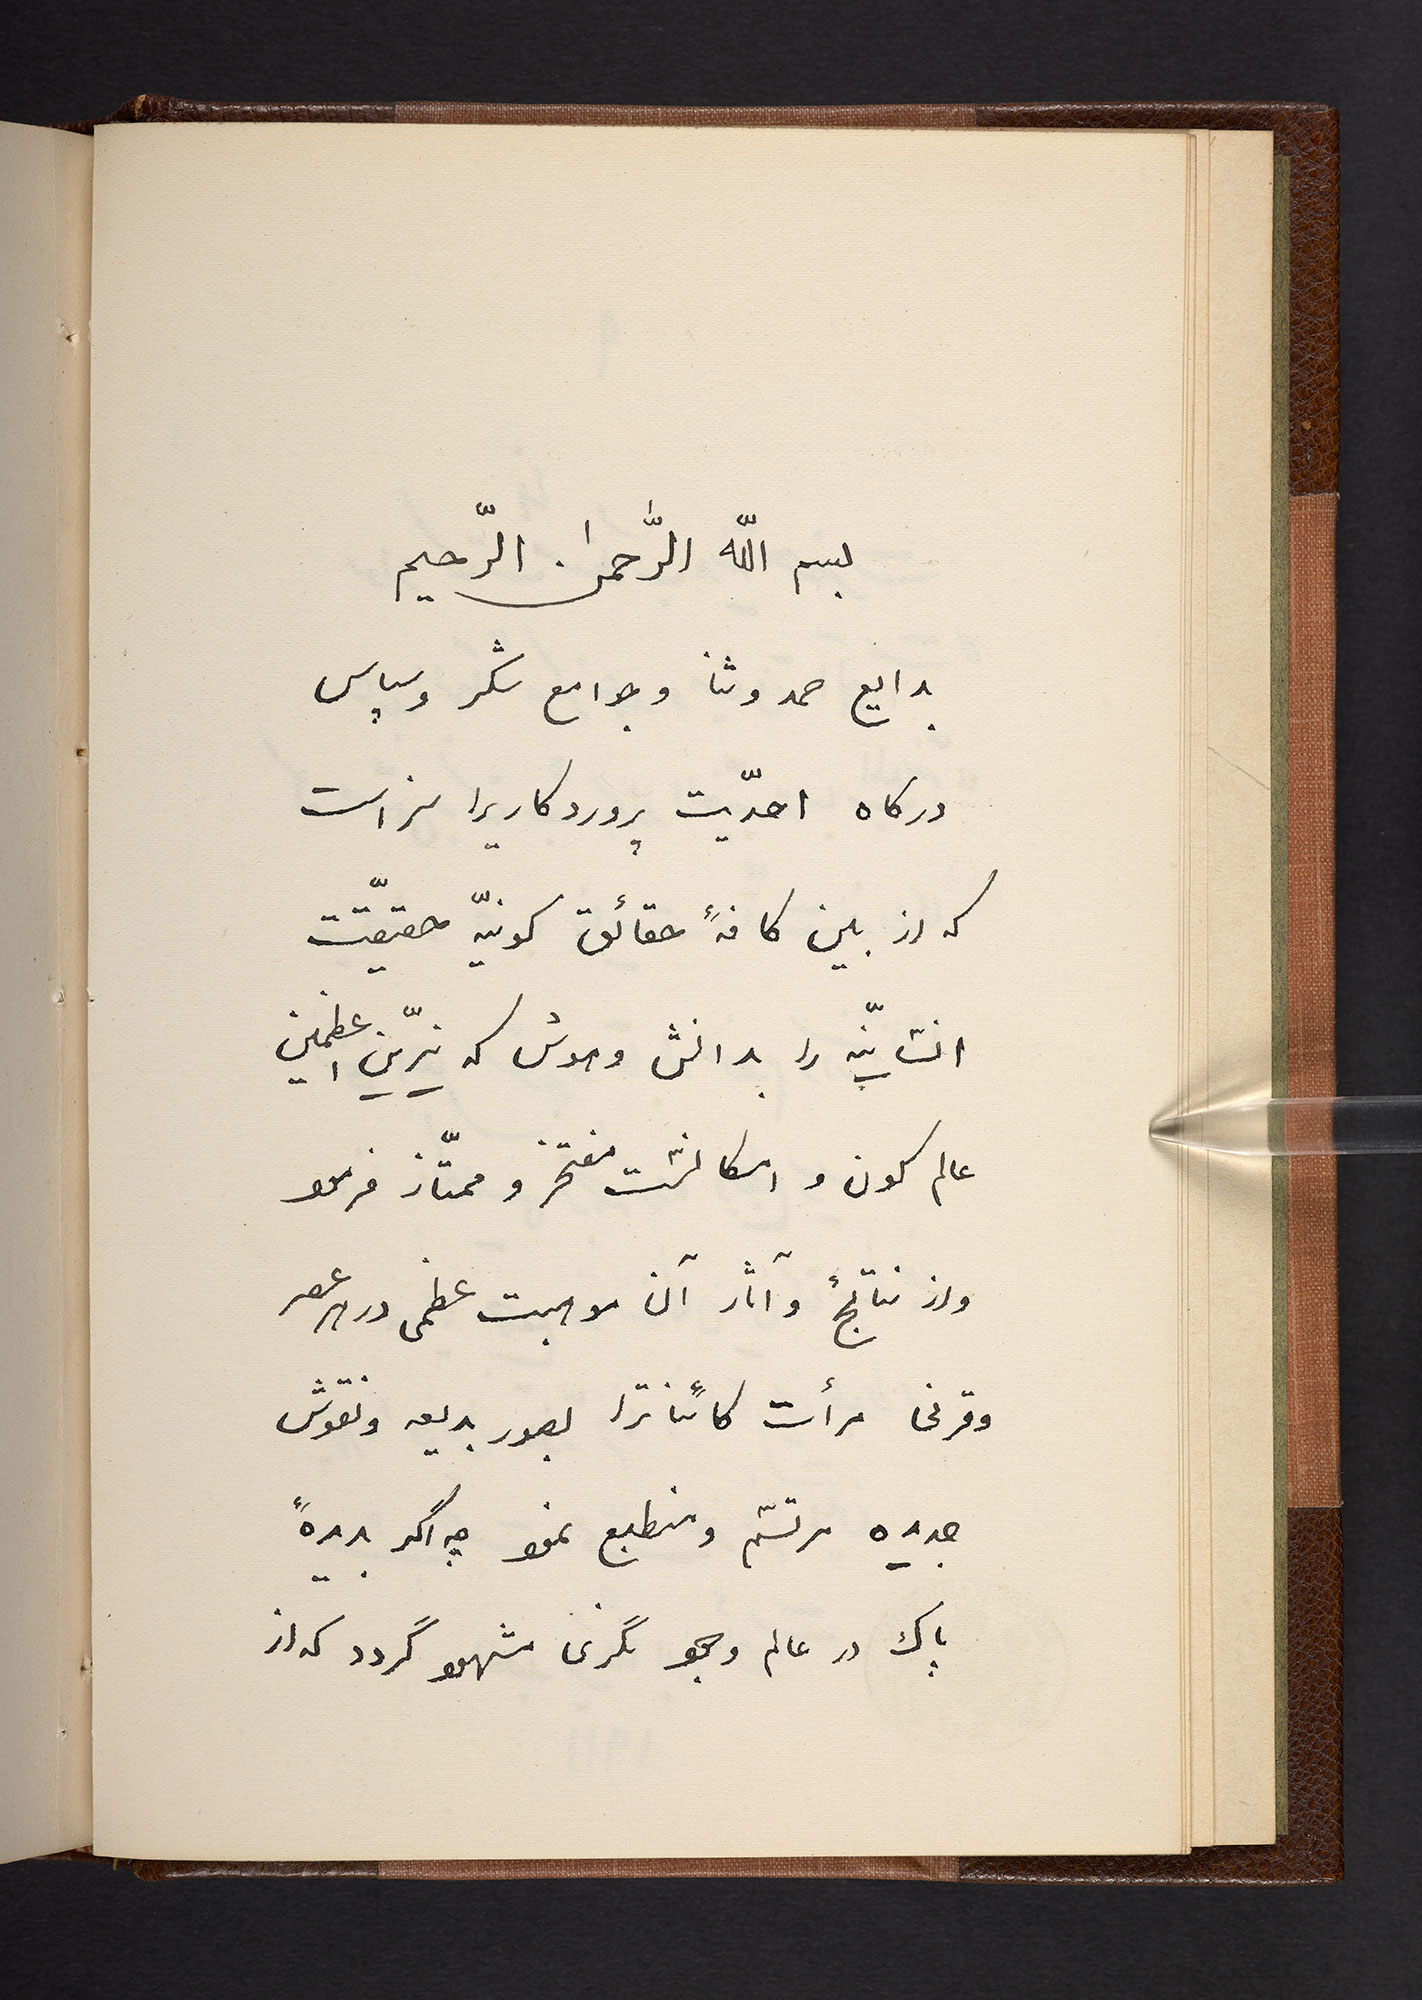 or 8686, folio 1 verso. 'Abdu'l-Baha's book The Secret of Divine Civilization (Asrār al-Ghaybīyya fī Asbāb al-Madanīyah).